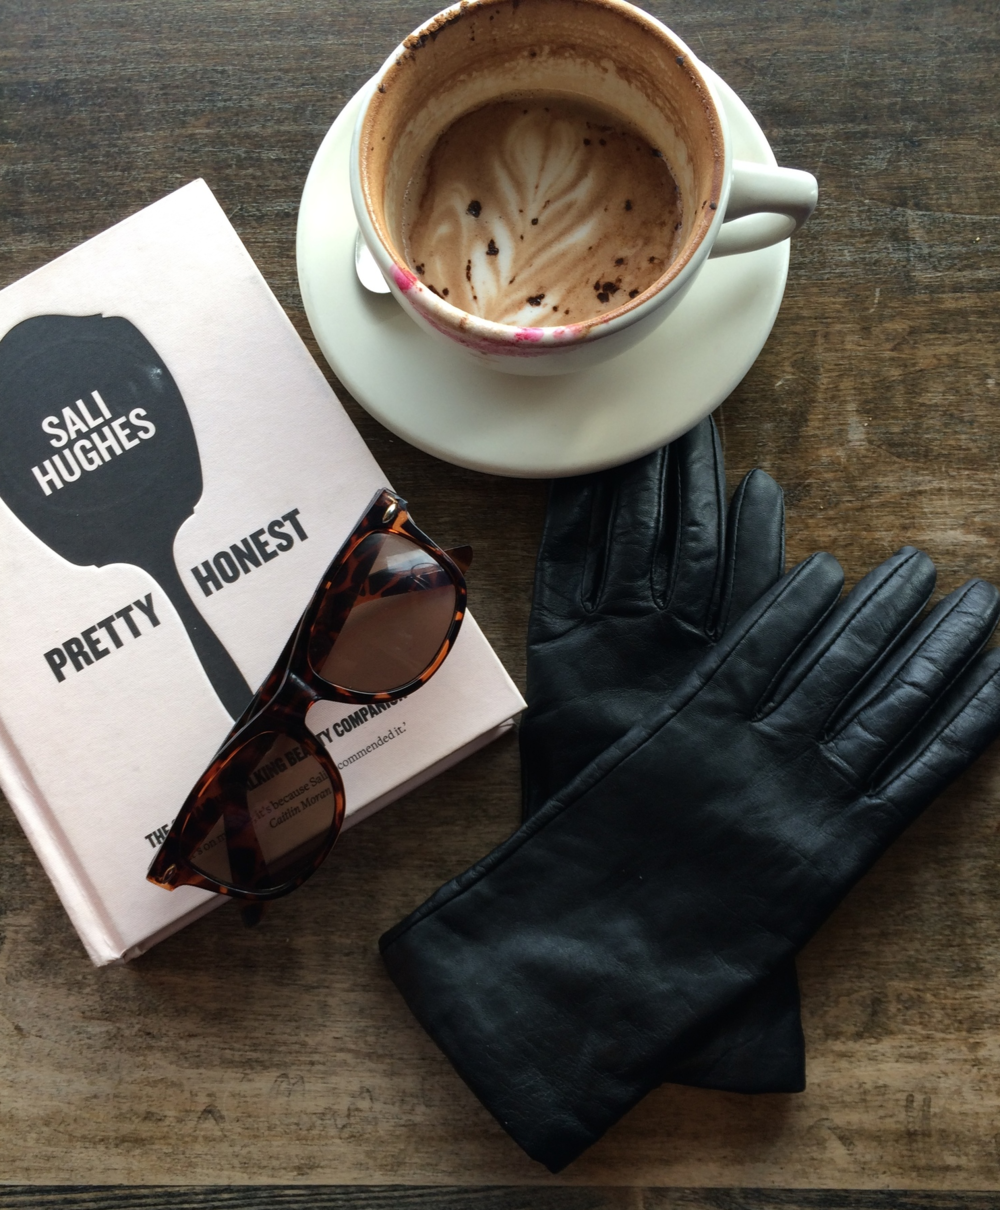 10. Memories of my weekend in Boston: Sali Hughes's Pretty Honest | Lined Leather Gloves | Coffee at Simon's